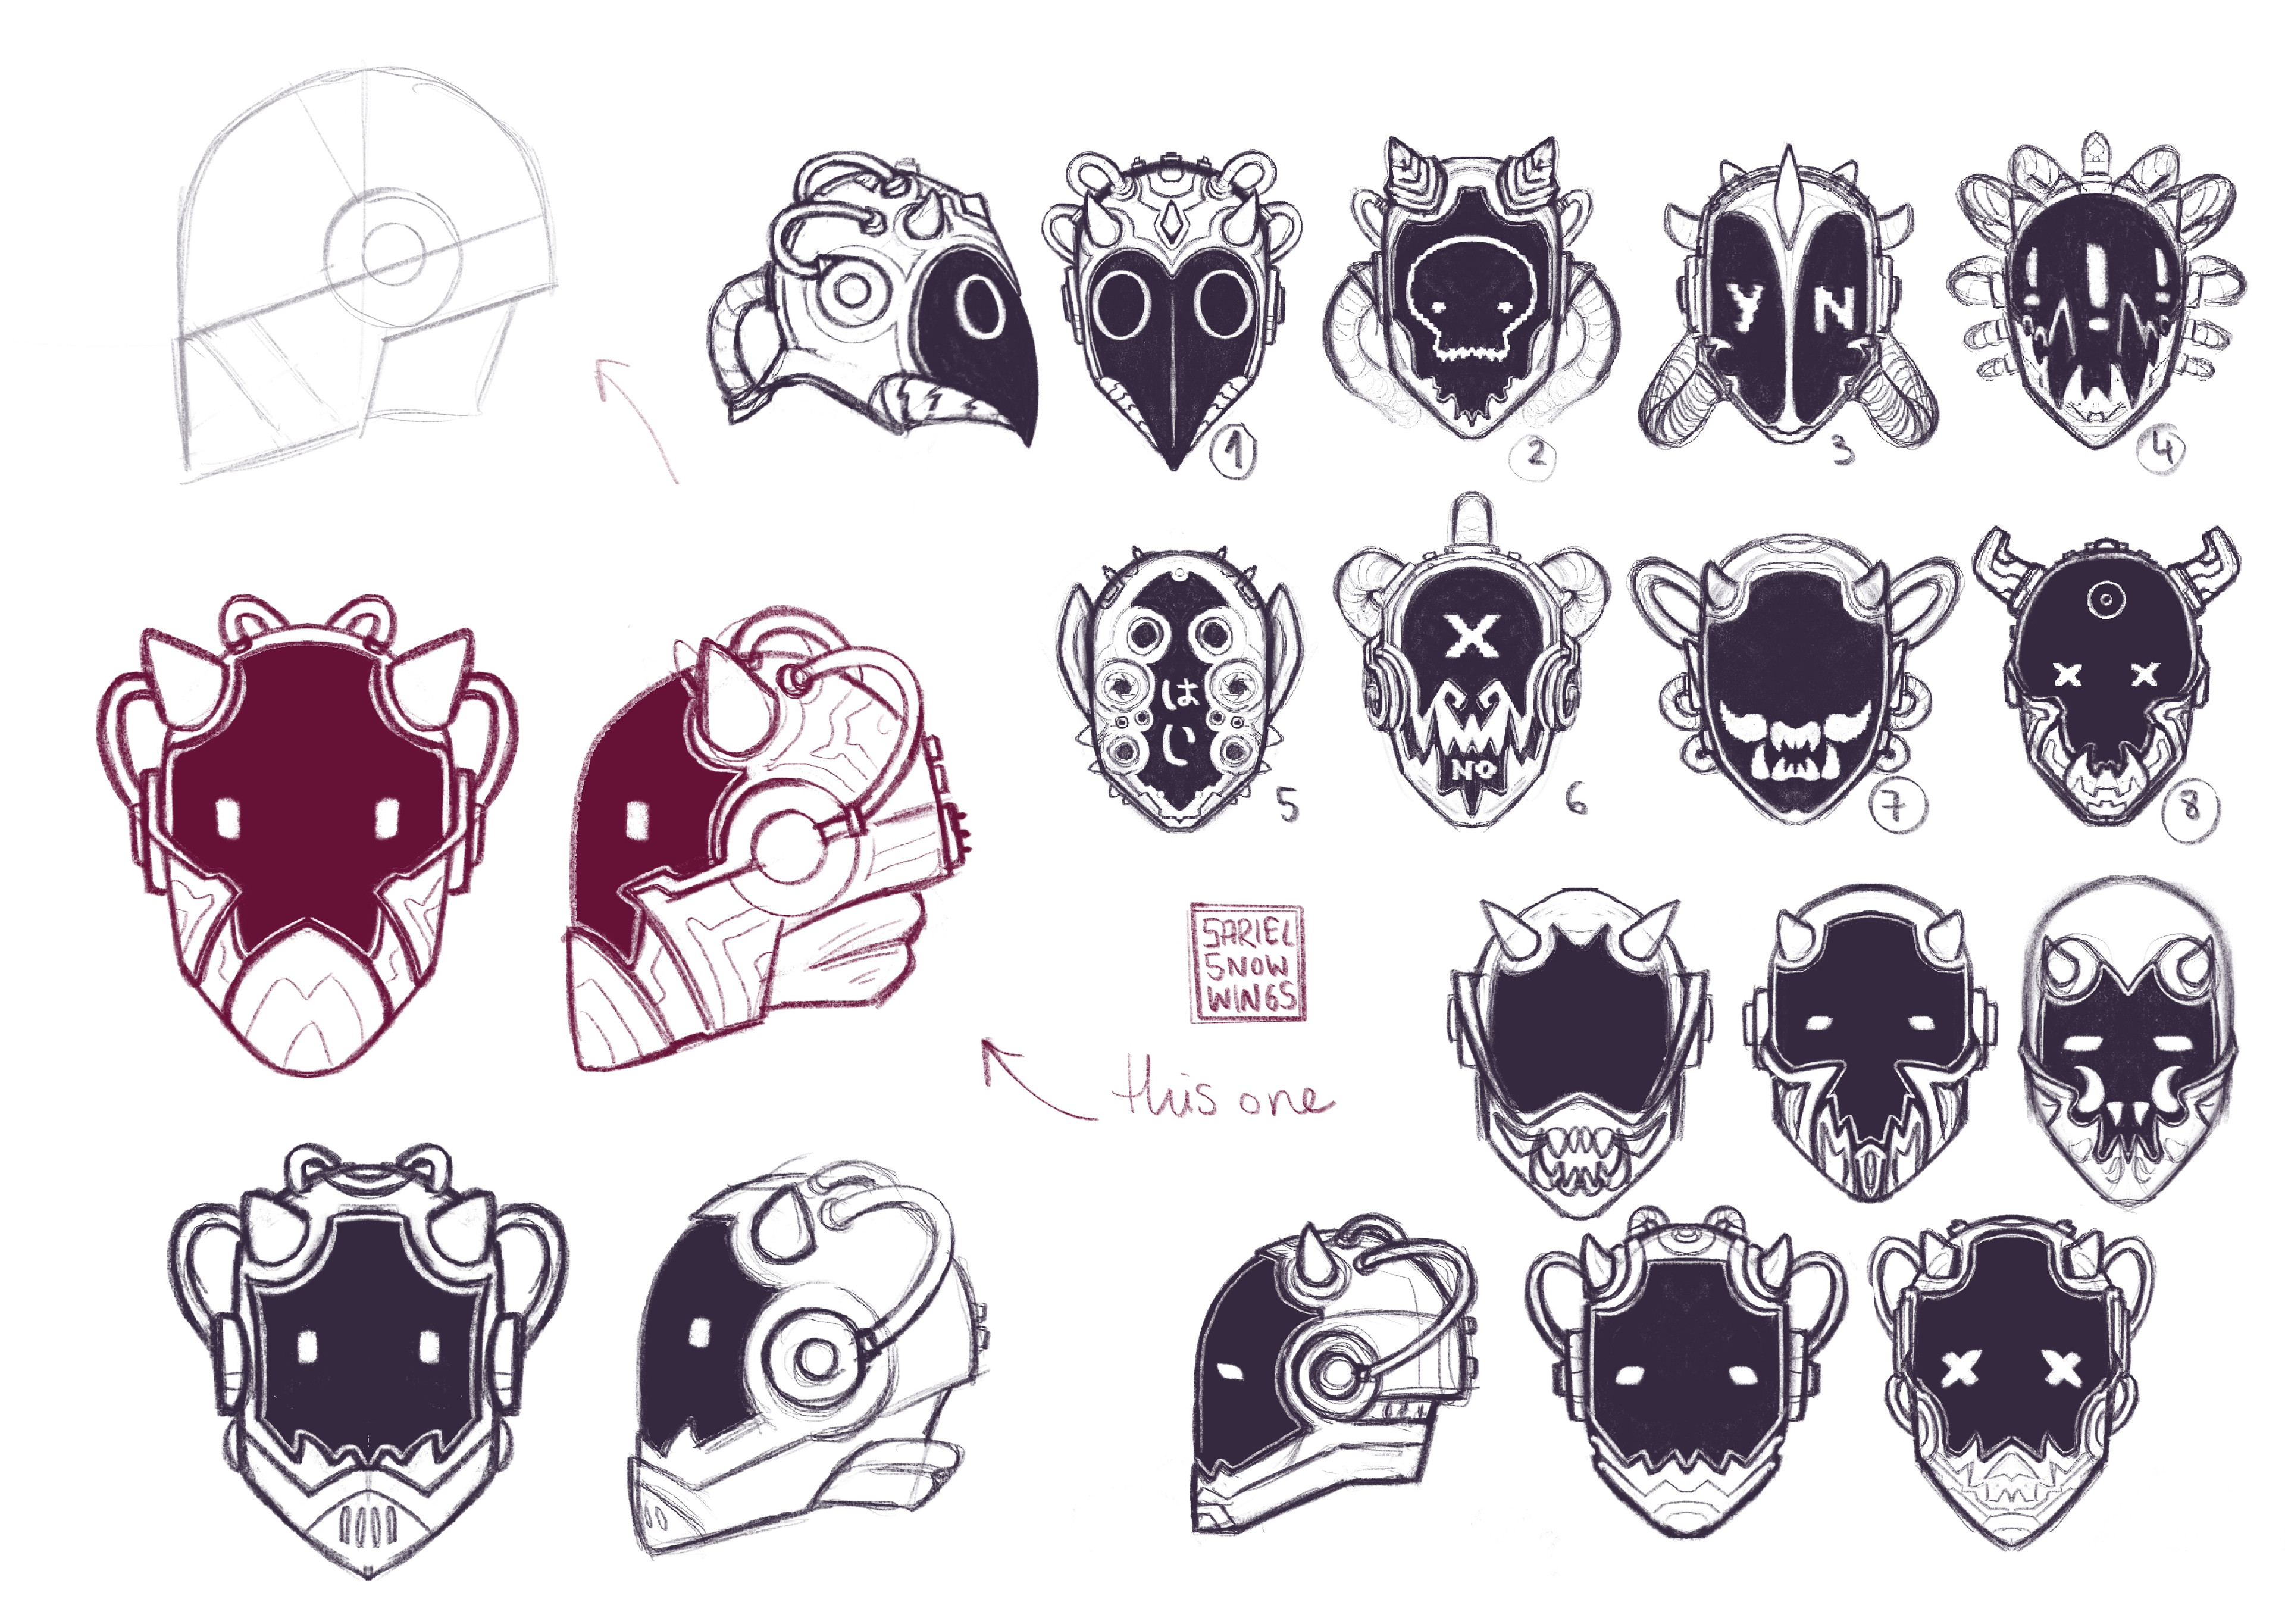 Concept art and variations for the main character's helmet